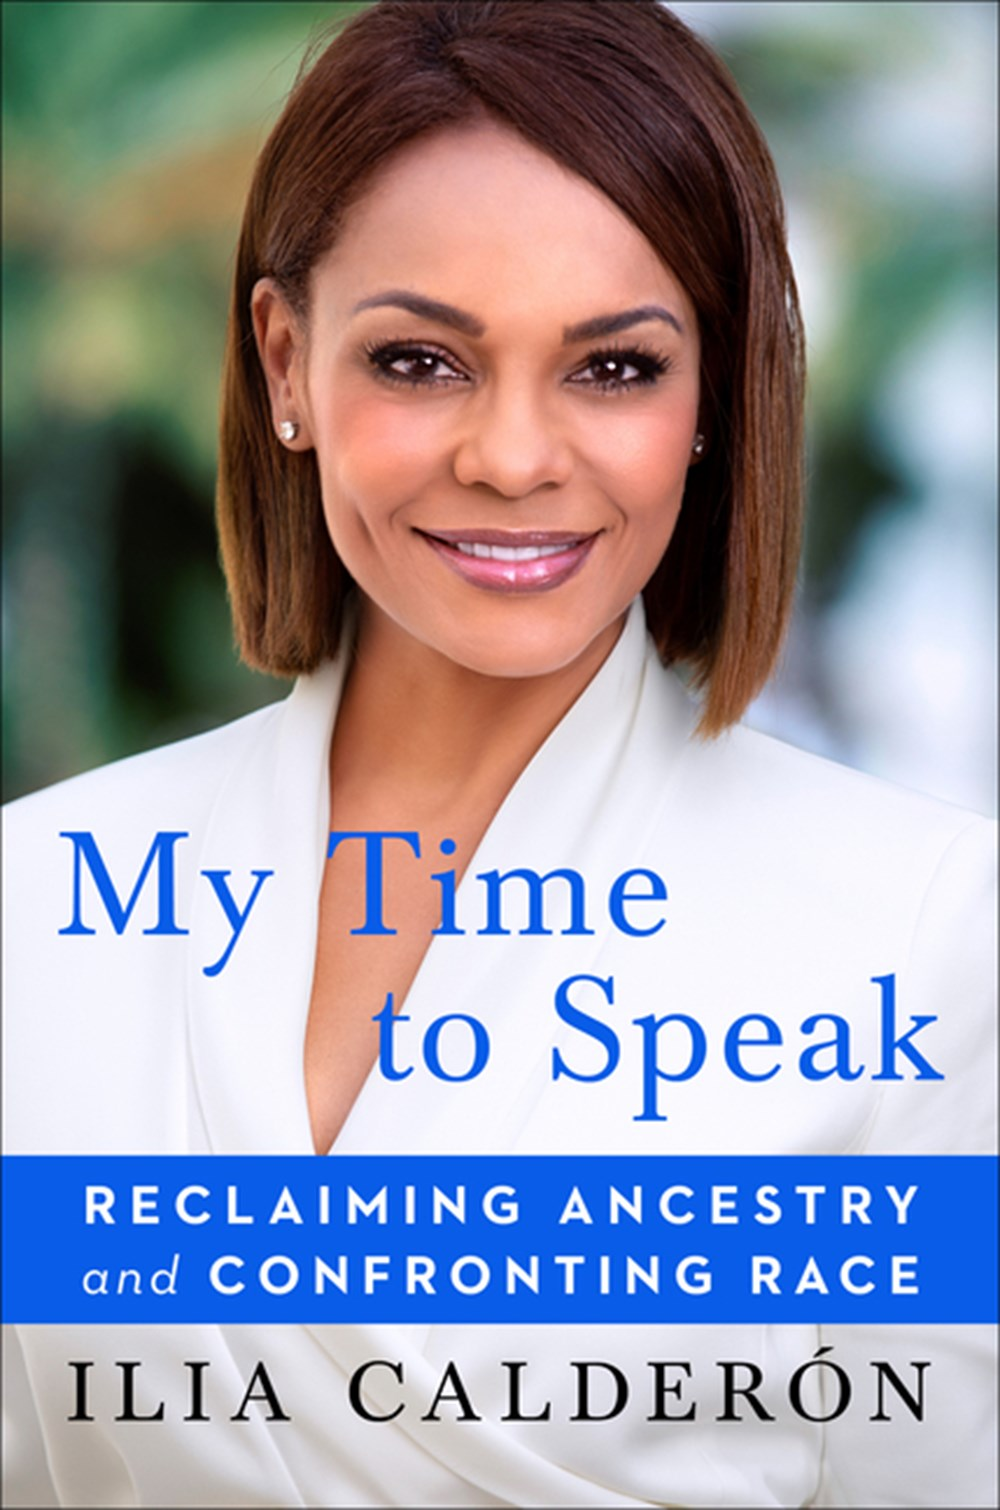 My Time to Speak Reclaiming Ancestry and Confronting Race